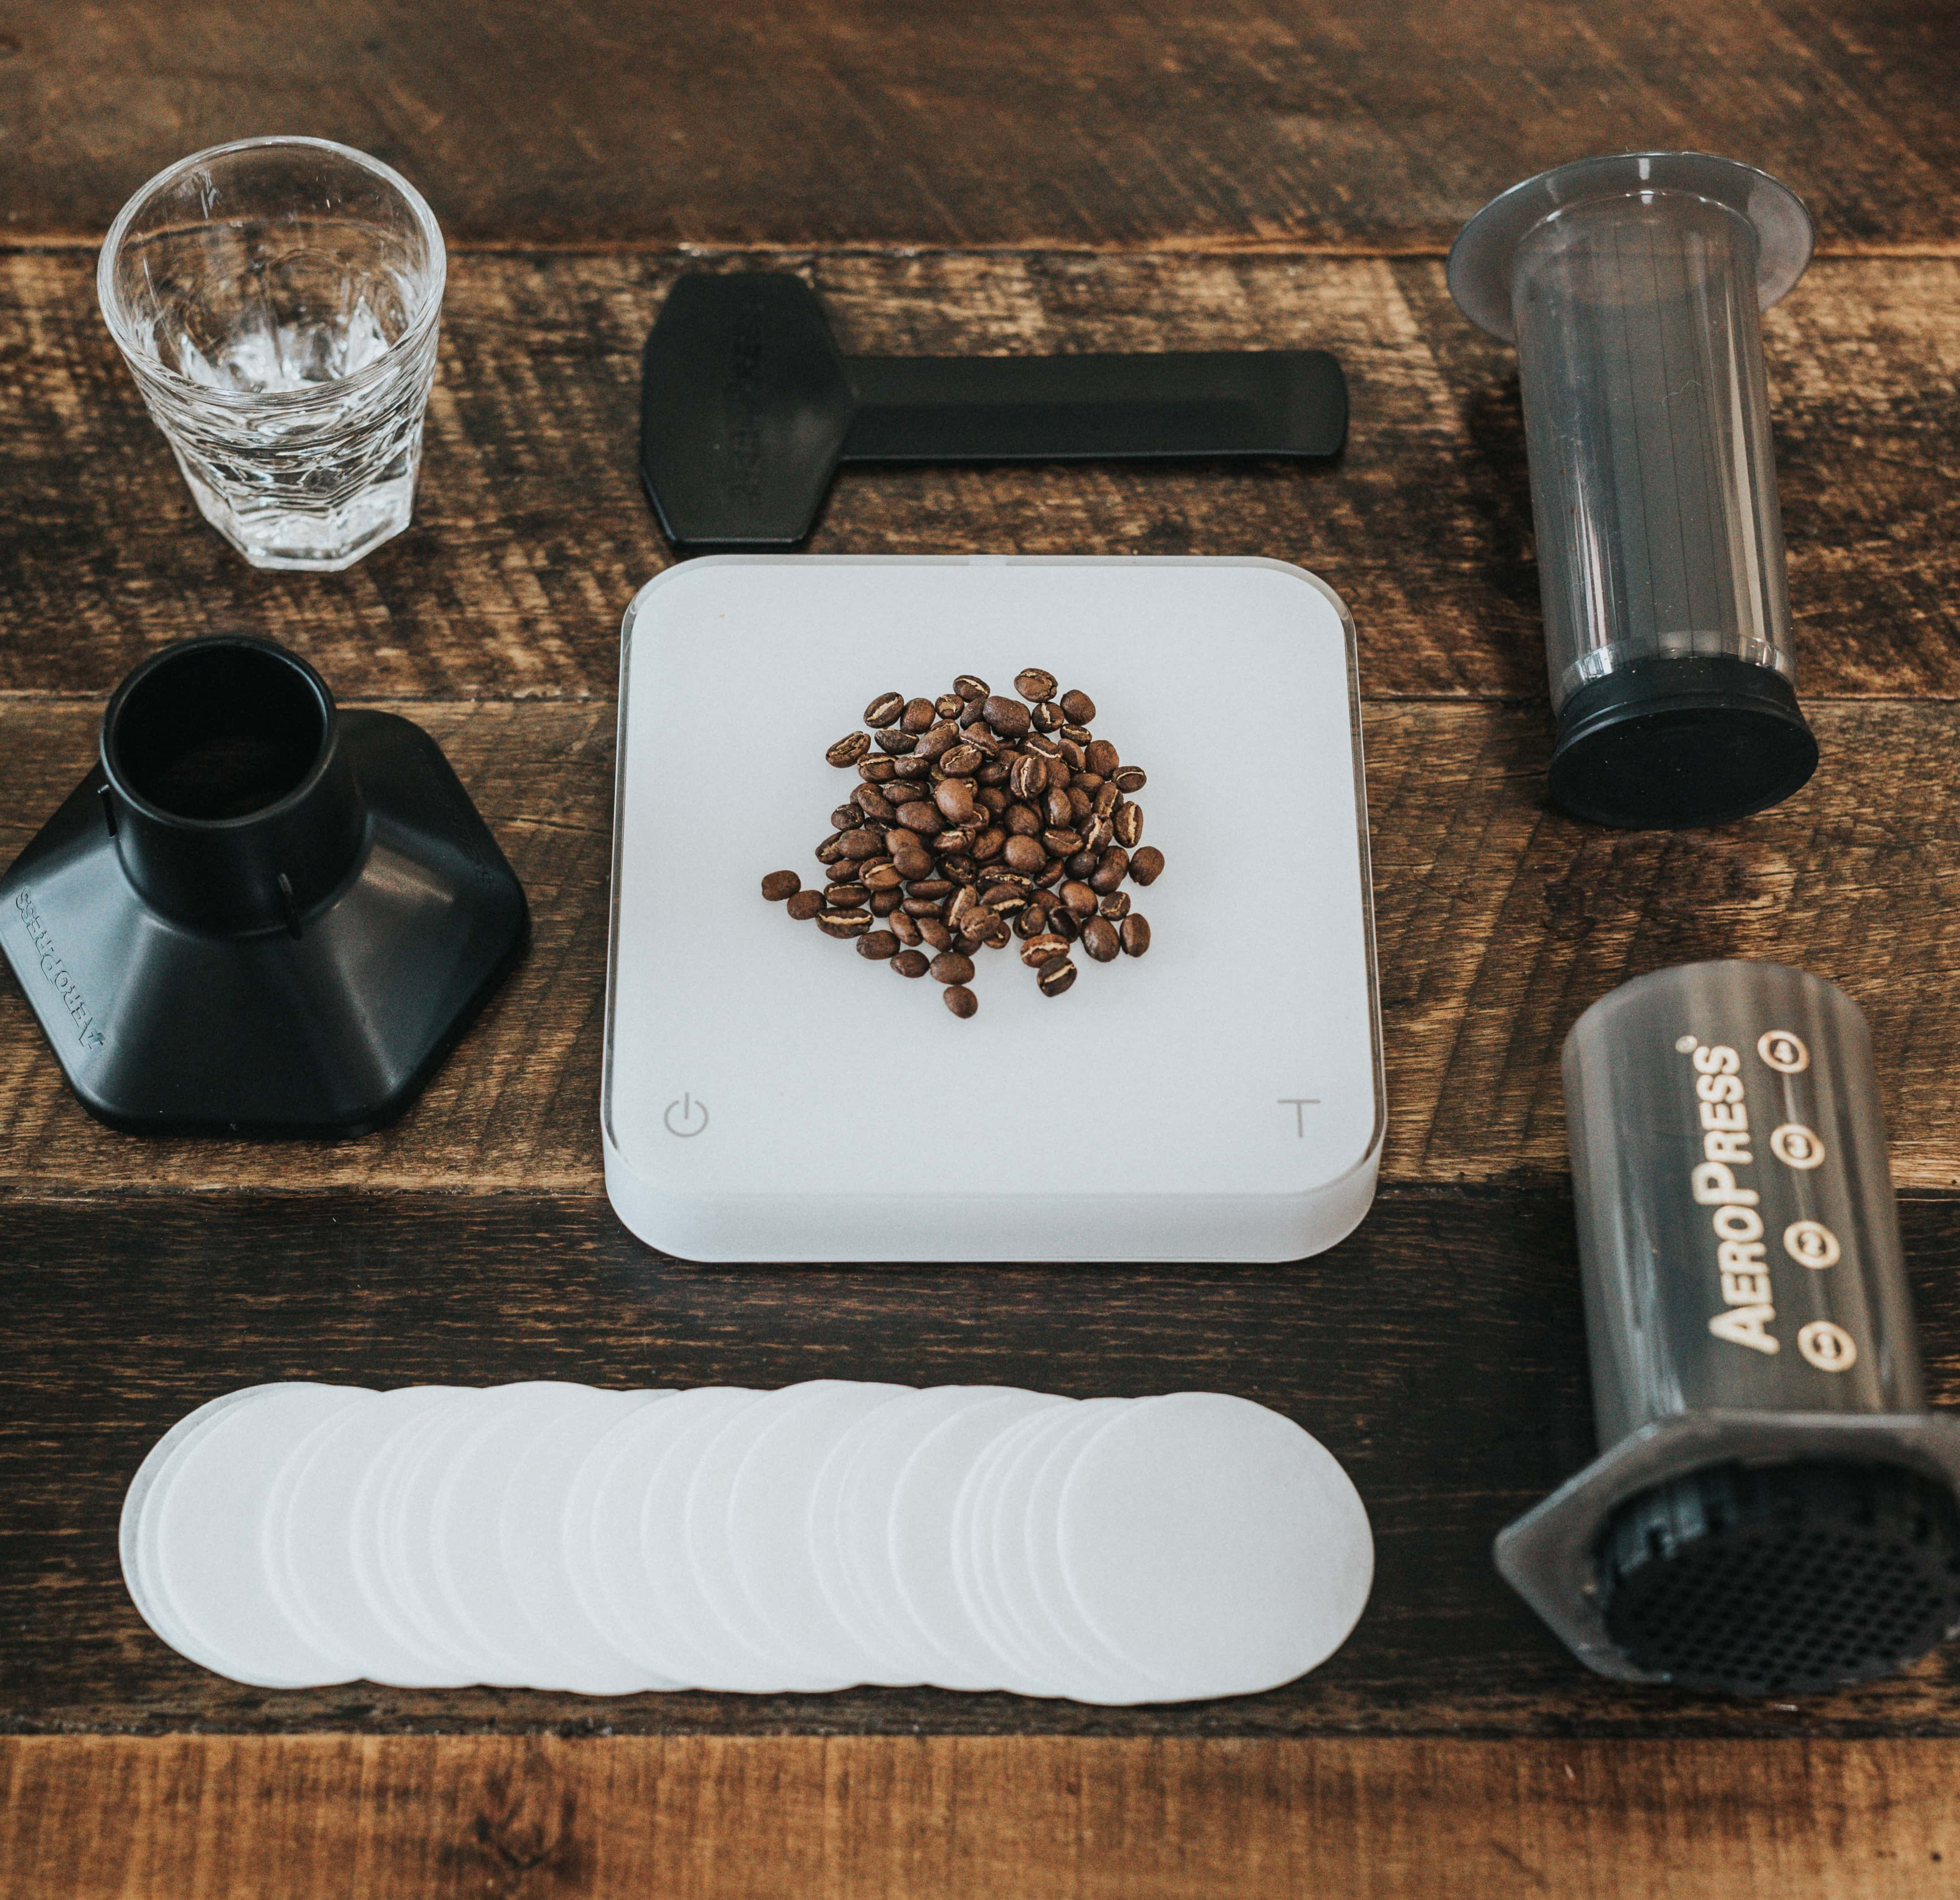 Coffee beans and equipment